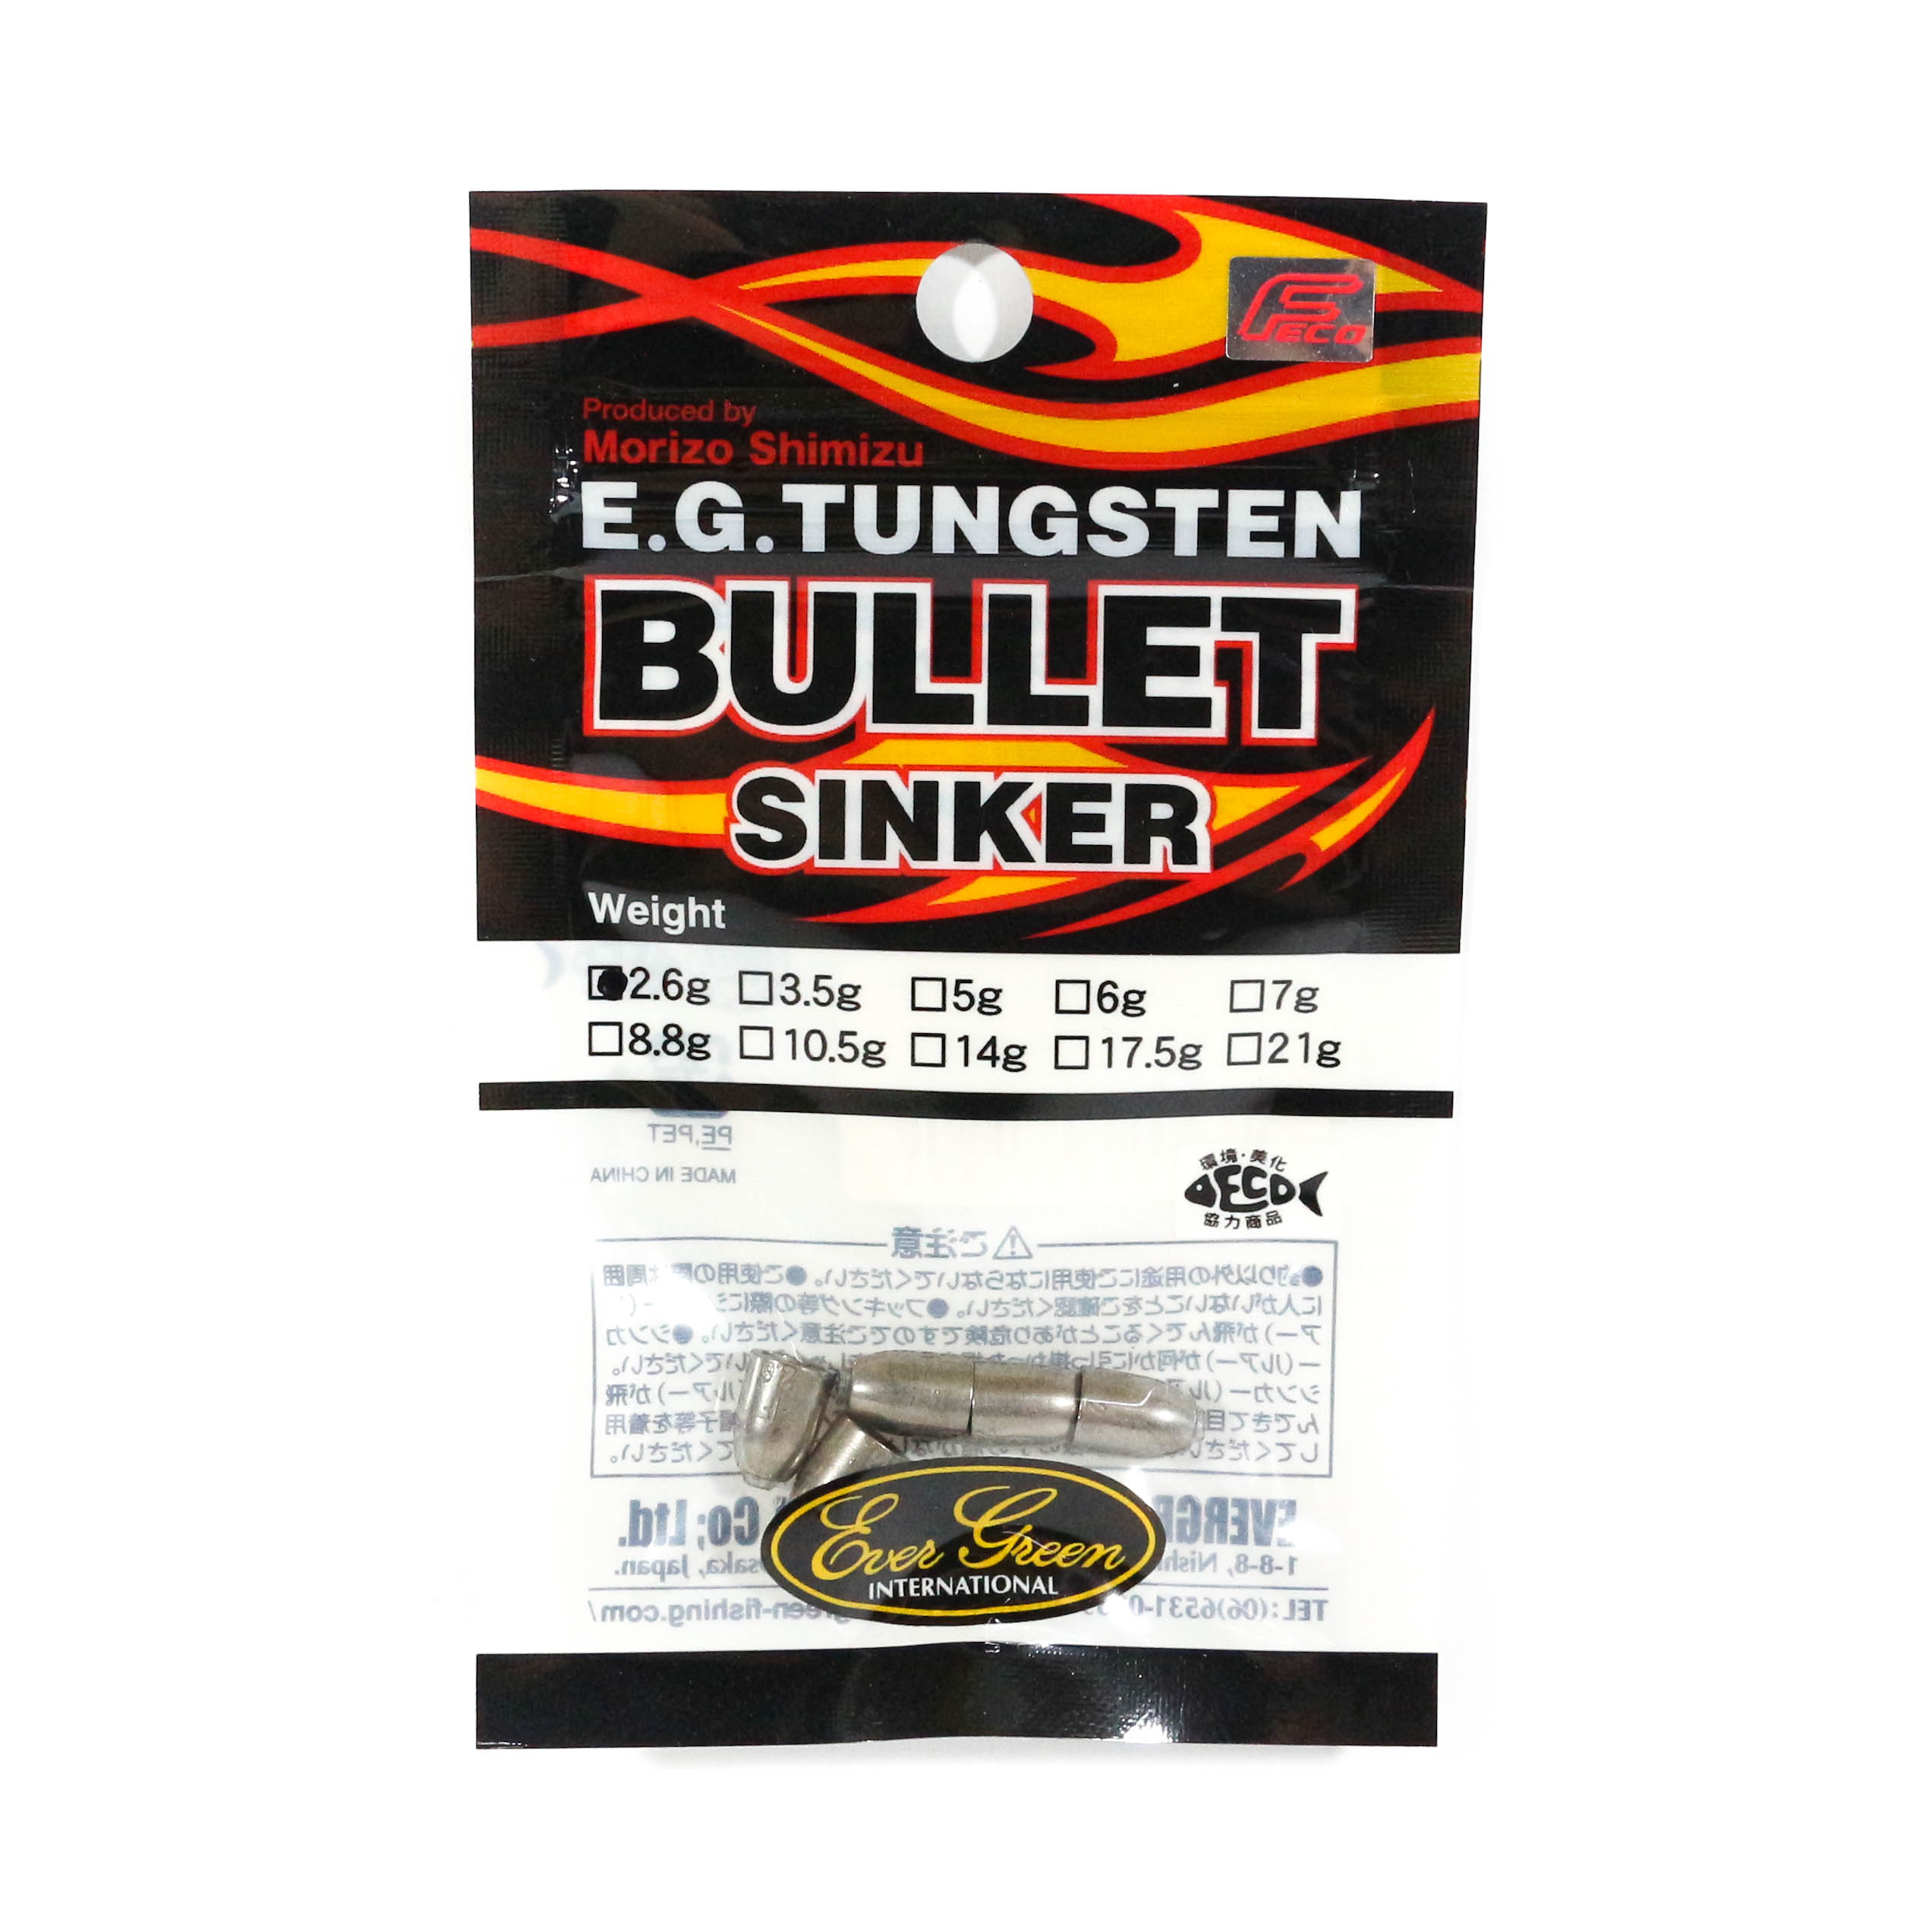 Evergreen Tungsten Bullet Sinker 3/32 oz (2.6 Grams) (1781)